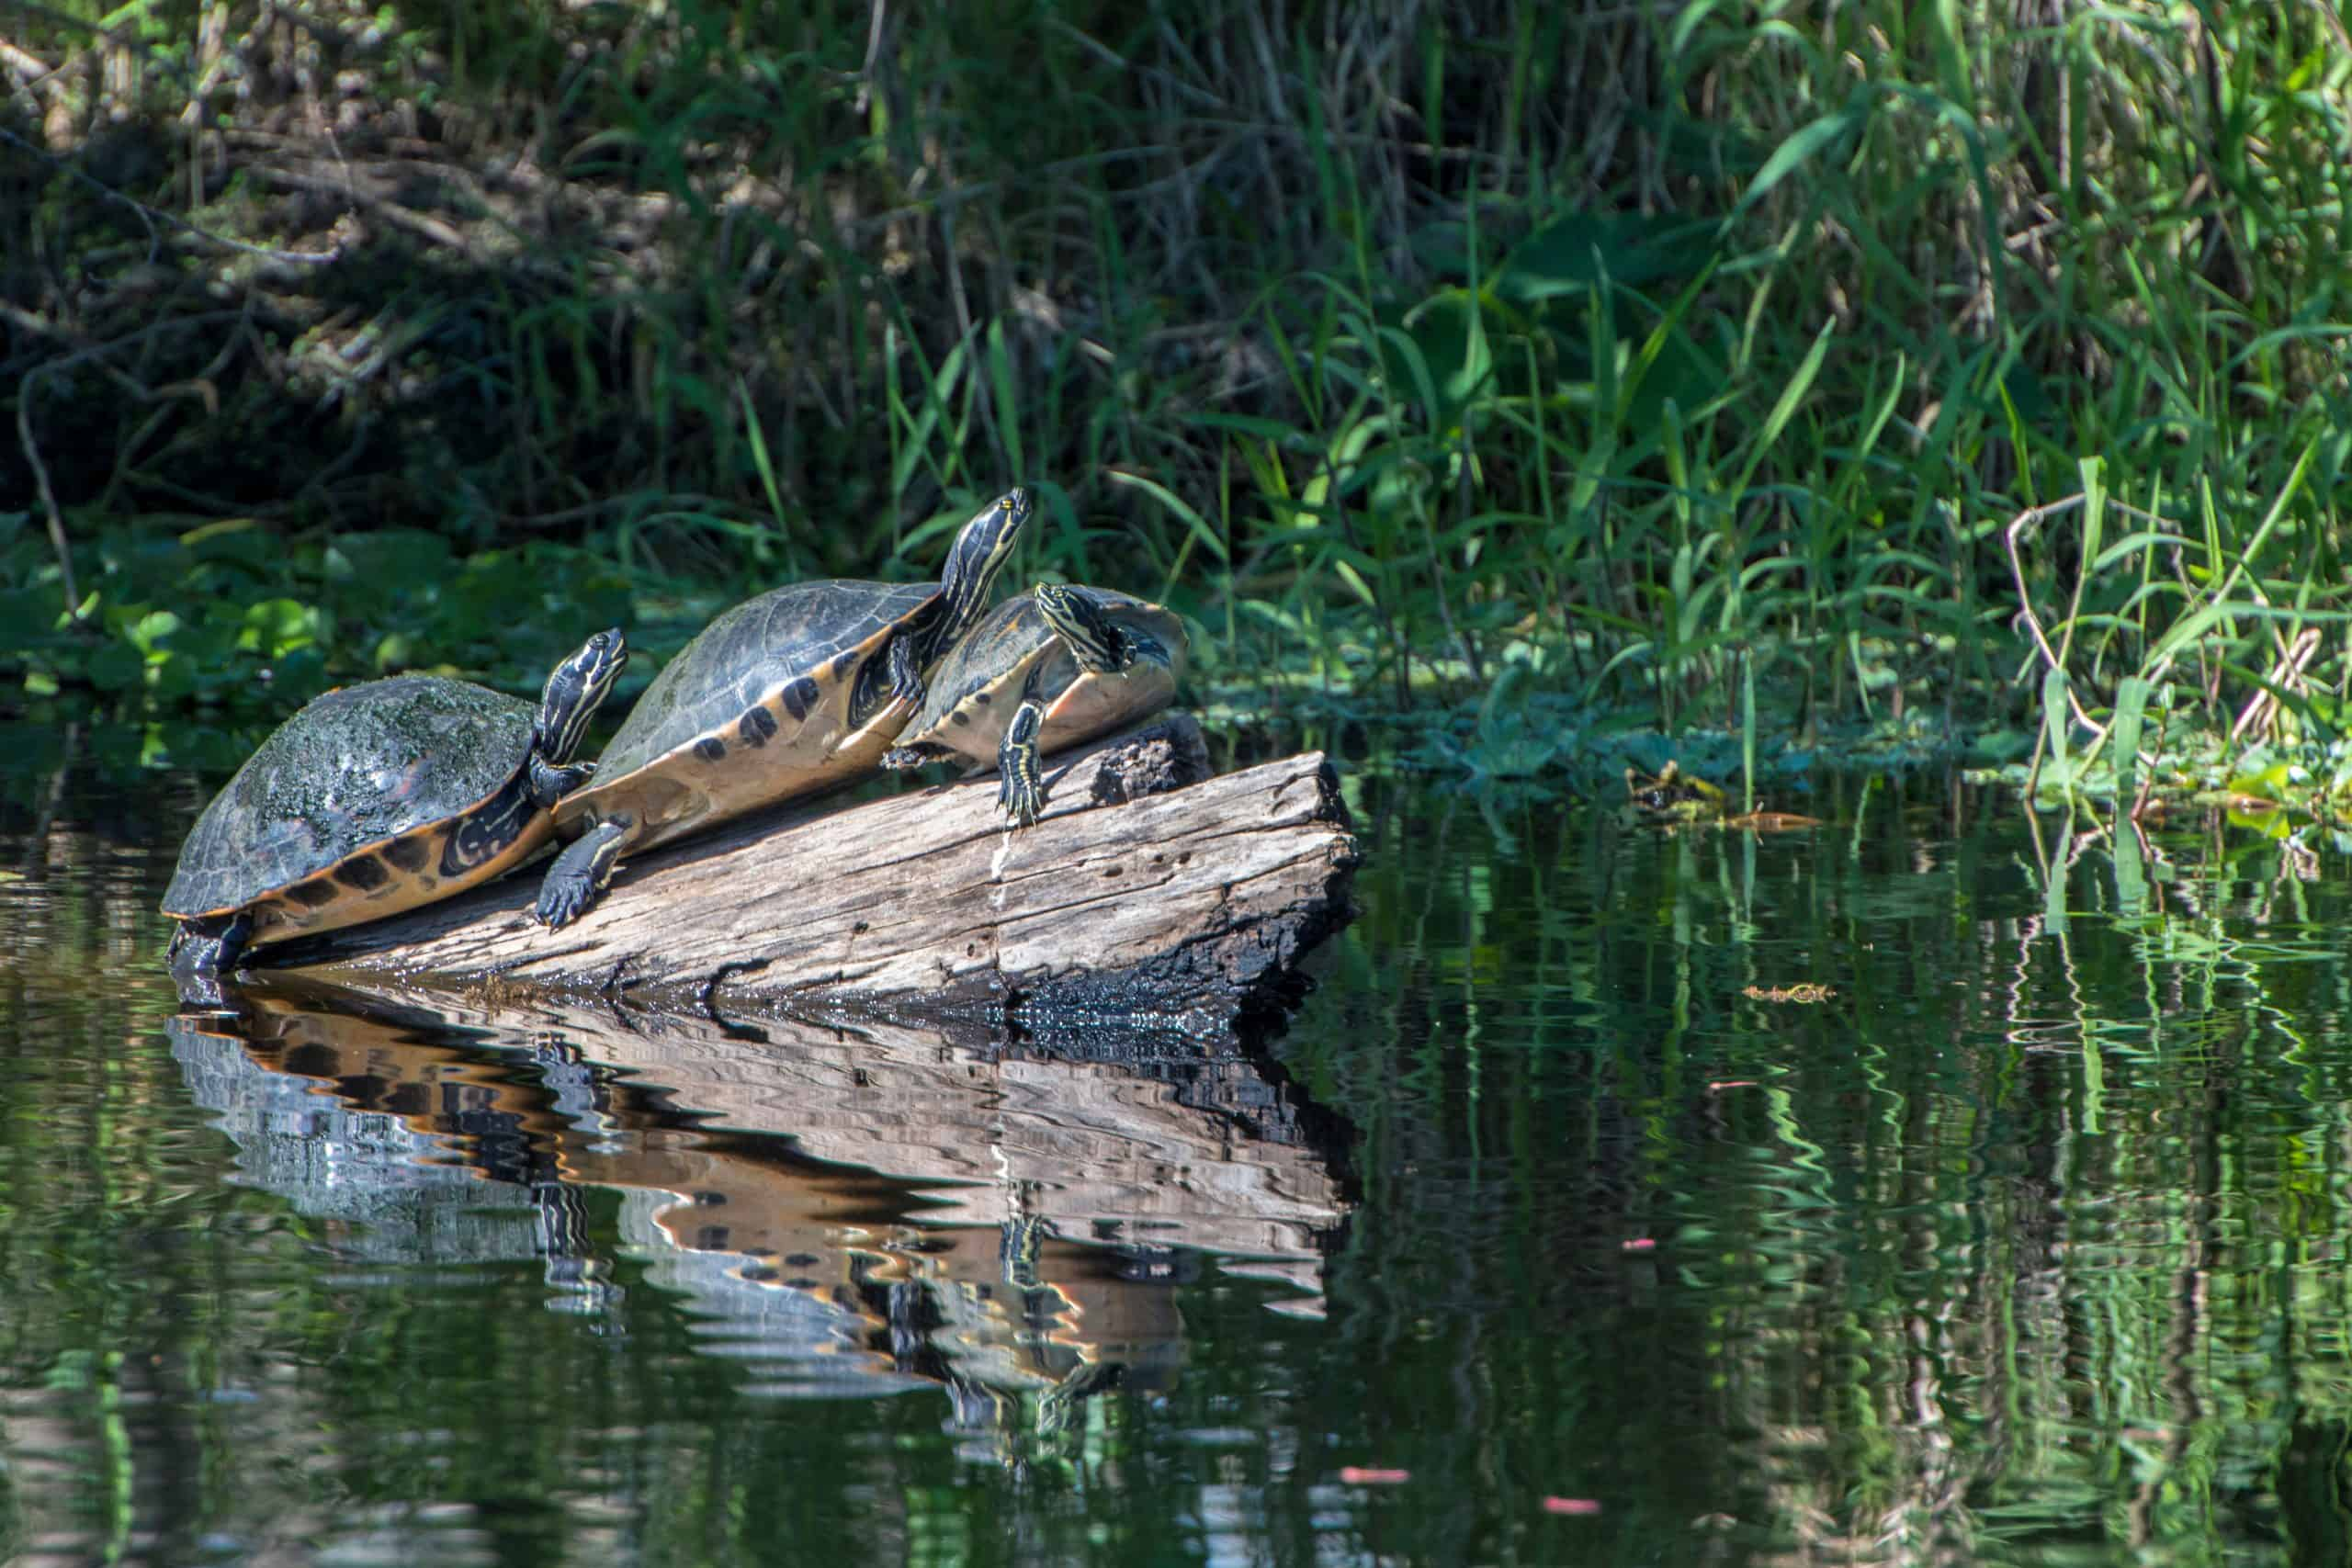 turtles balancing on log in spring